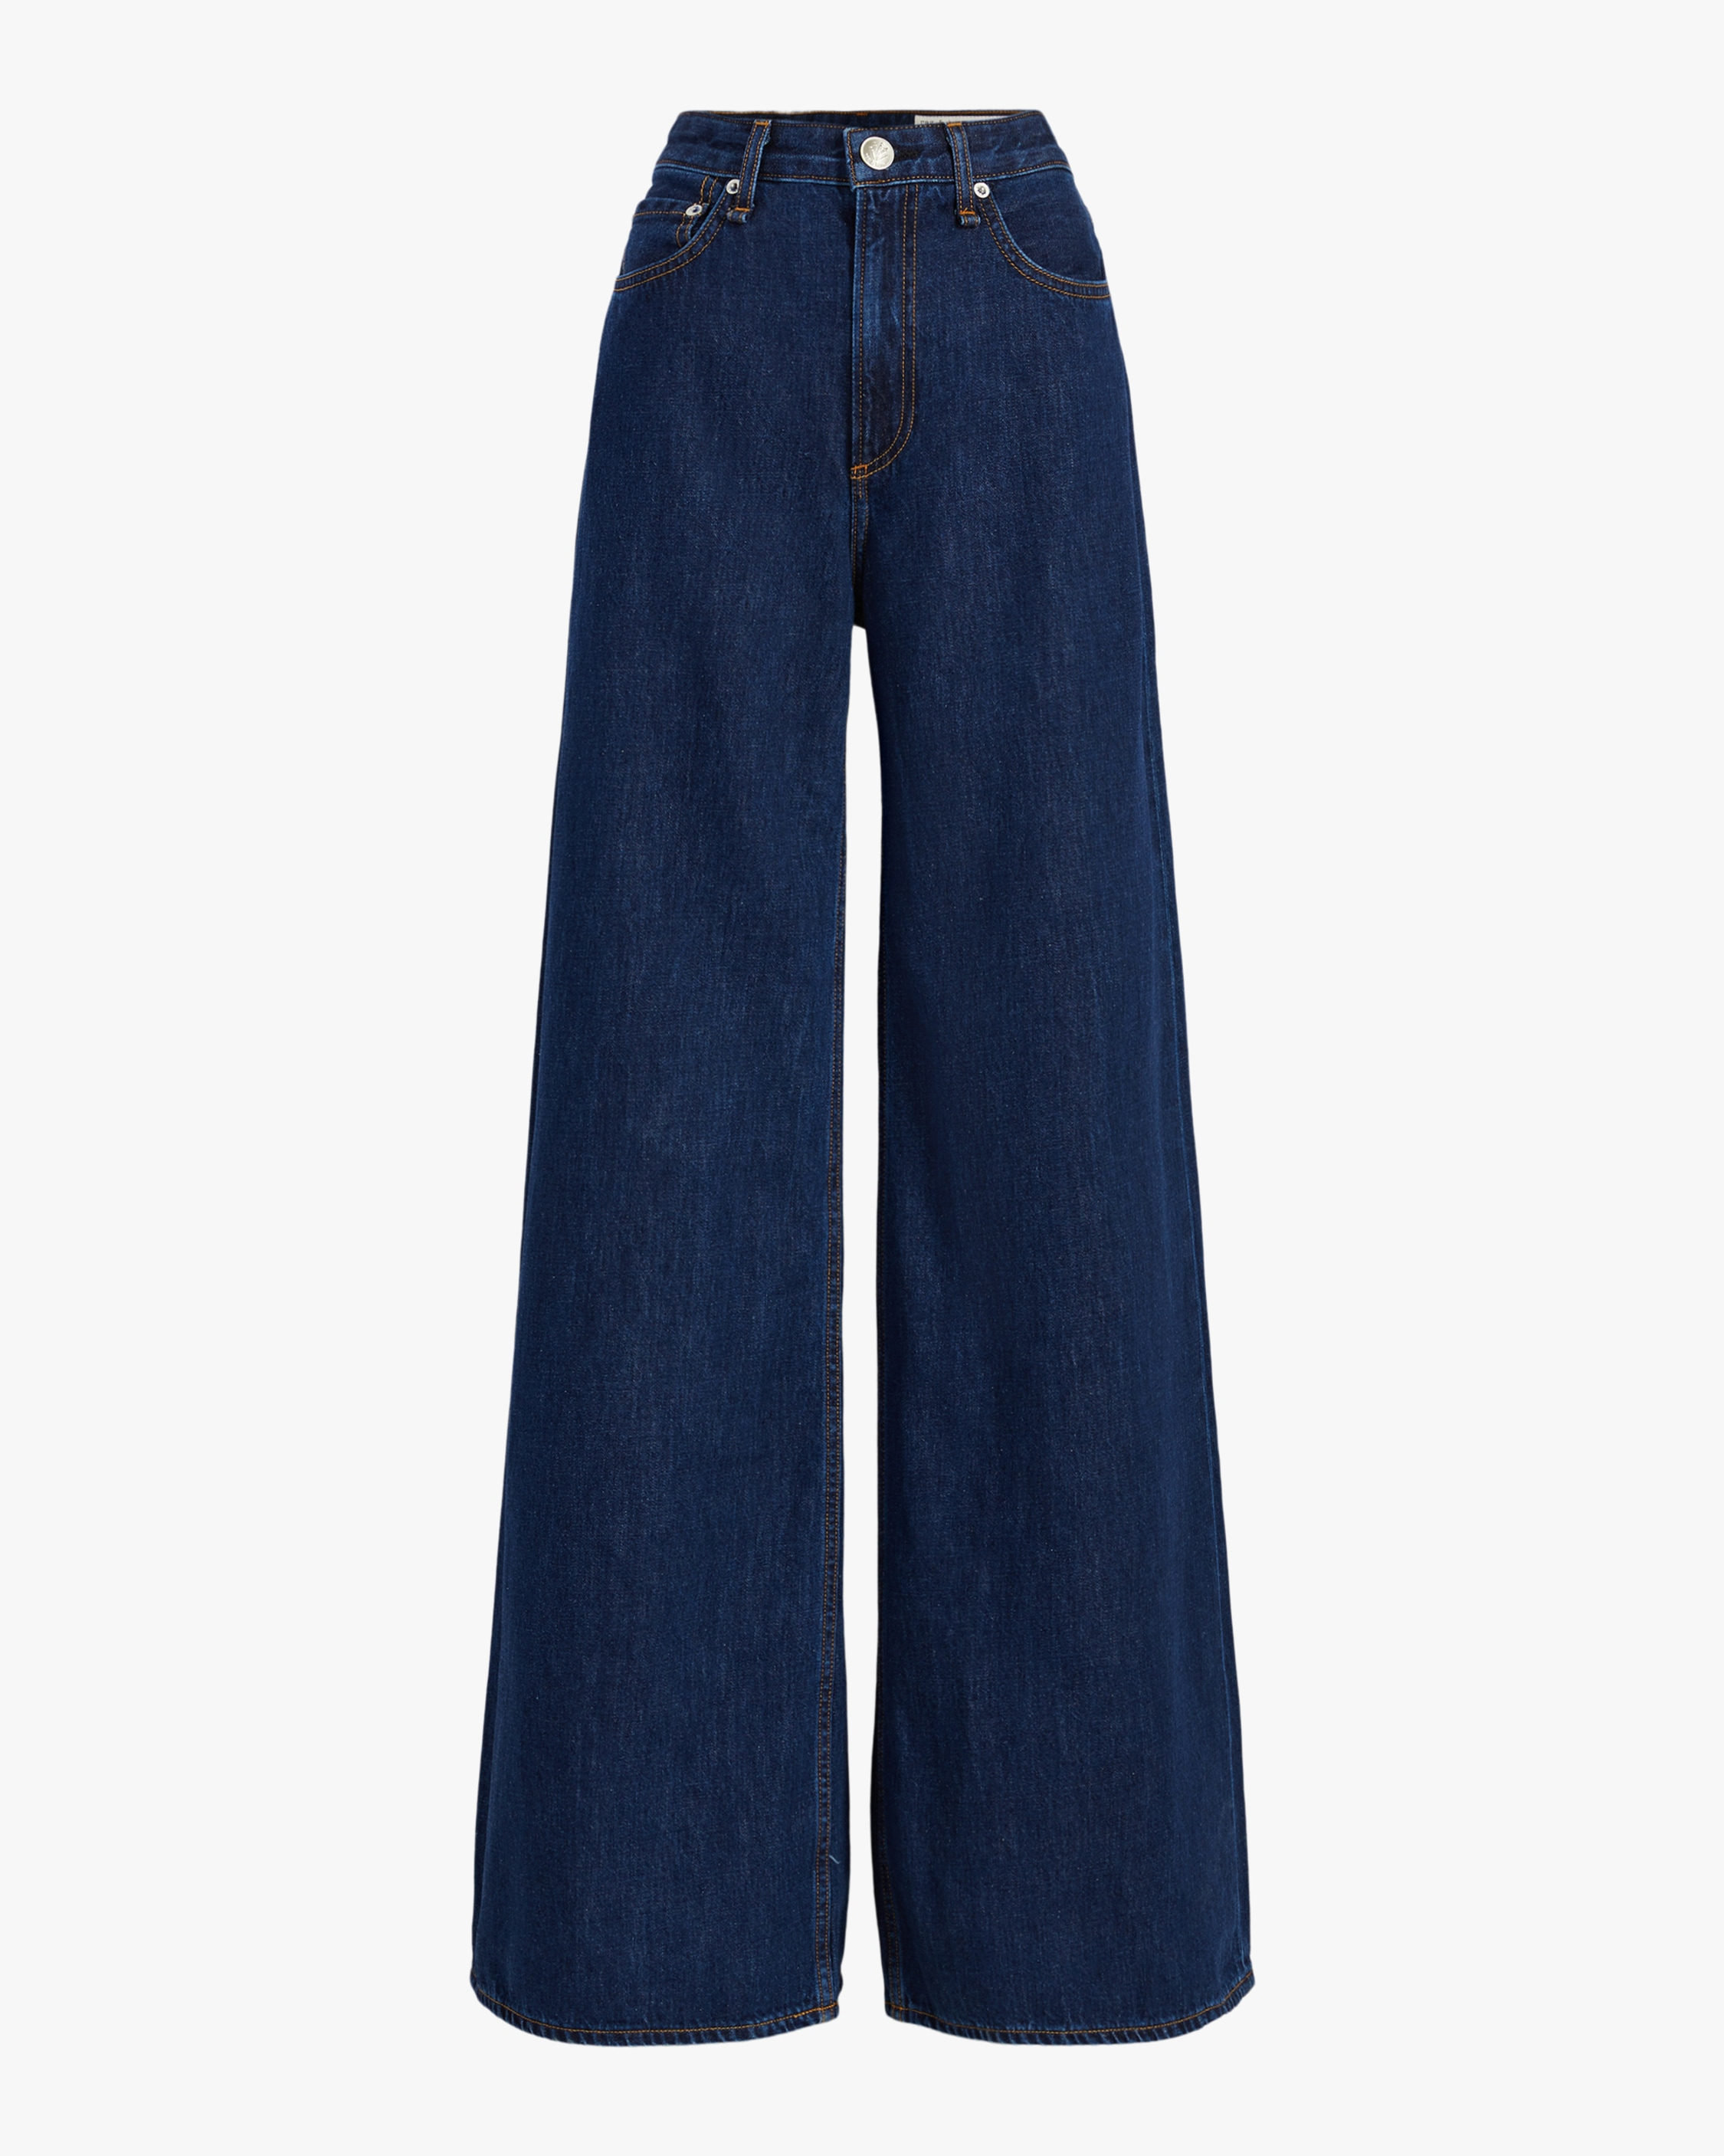 Rag & Bone RUTH SUPER HIGH-RISE ULTRA WIDE-LEG JEANS